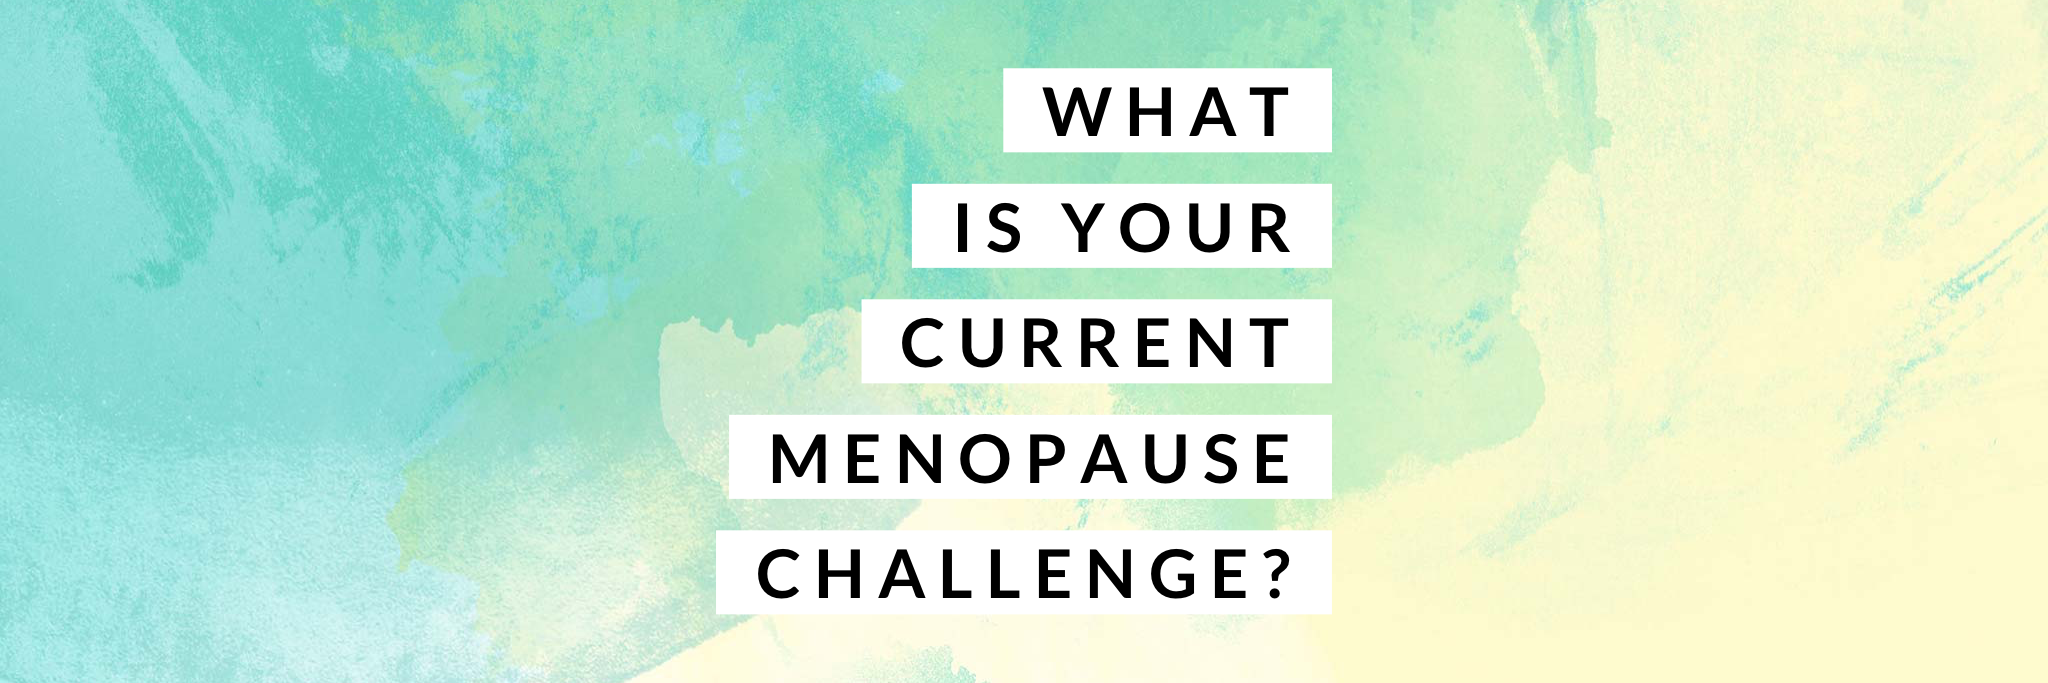 whats-your-menopause-challenge